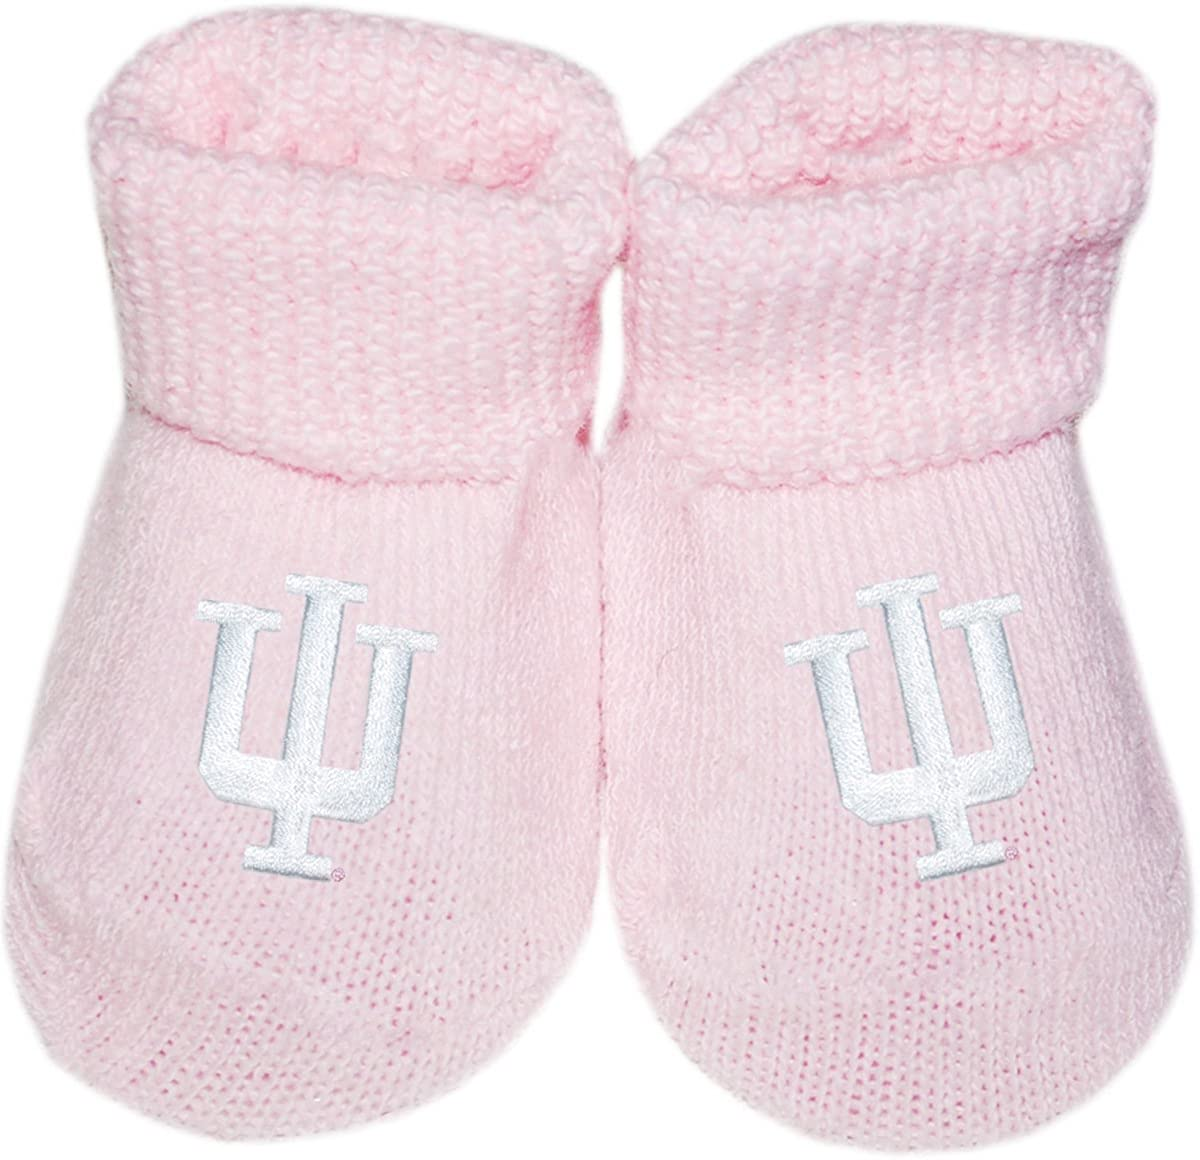 Indiana University Hoosier Newborn Baby Bootie Sock